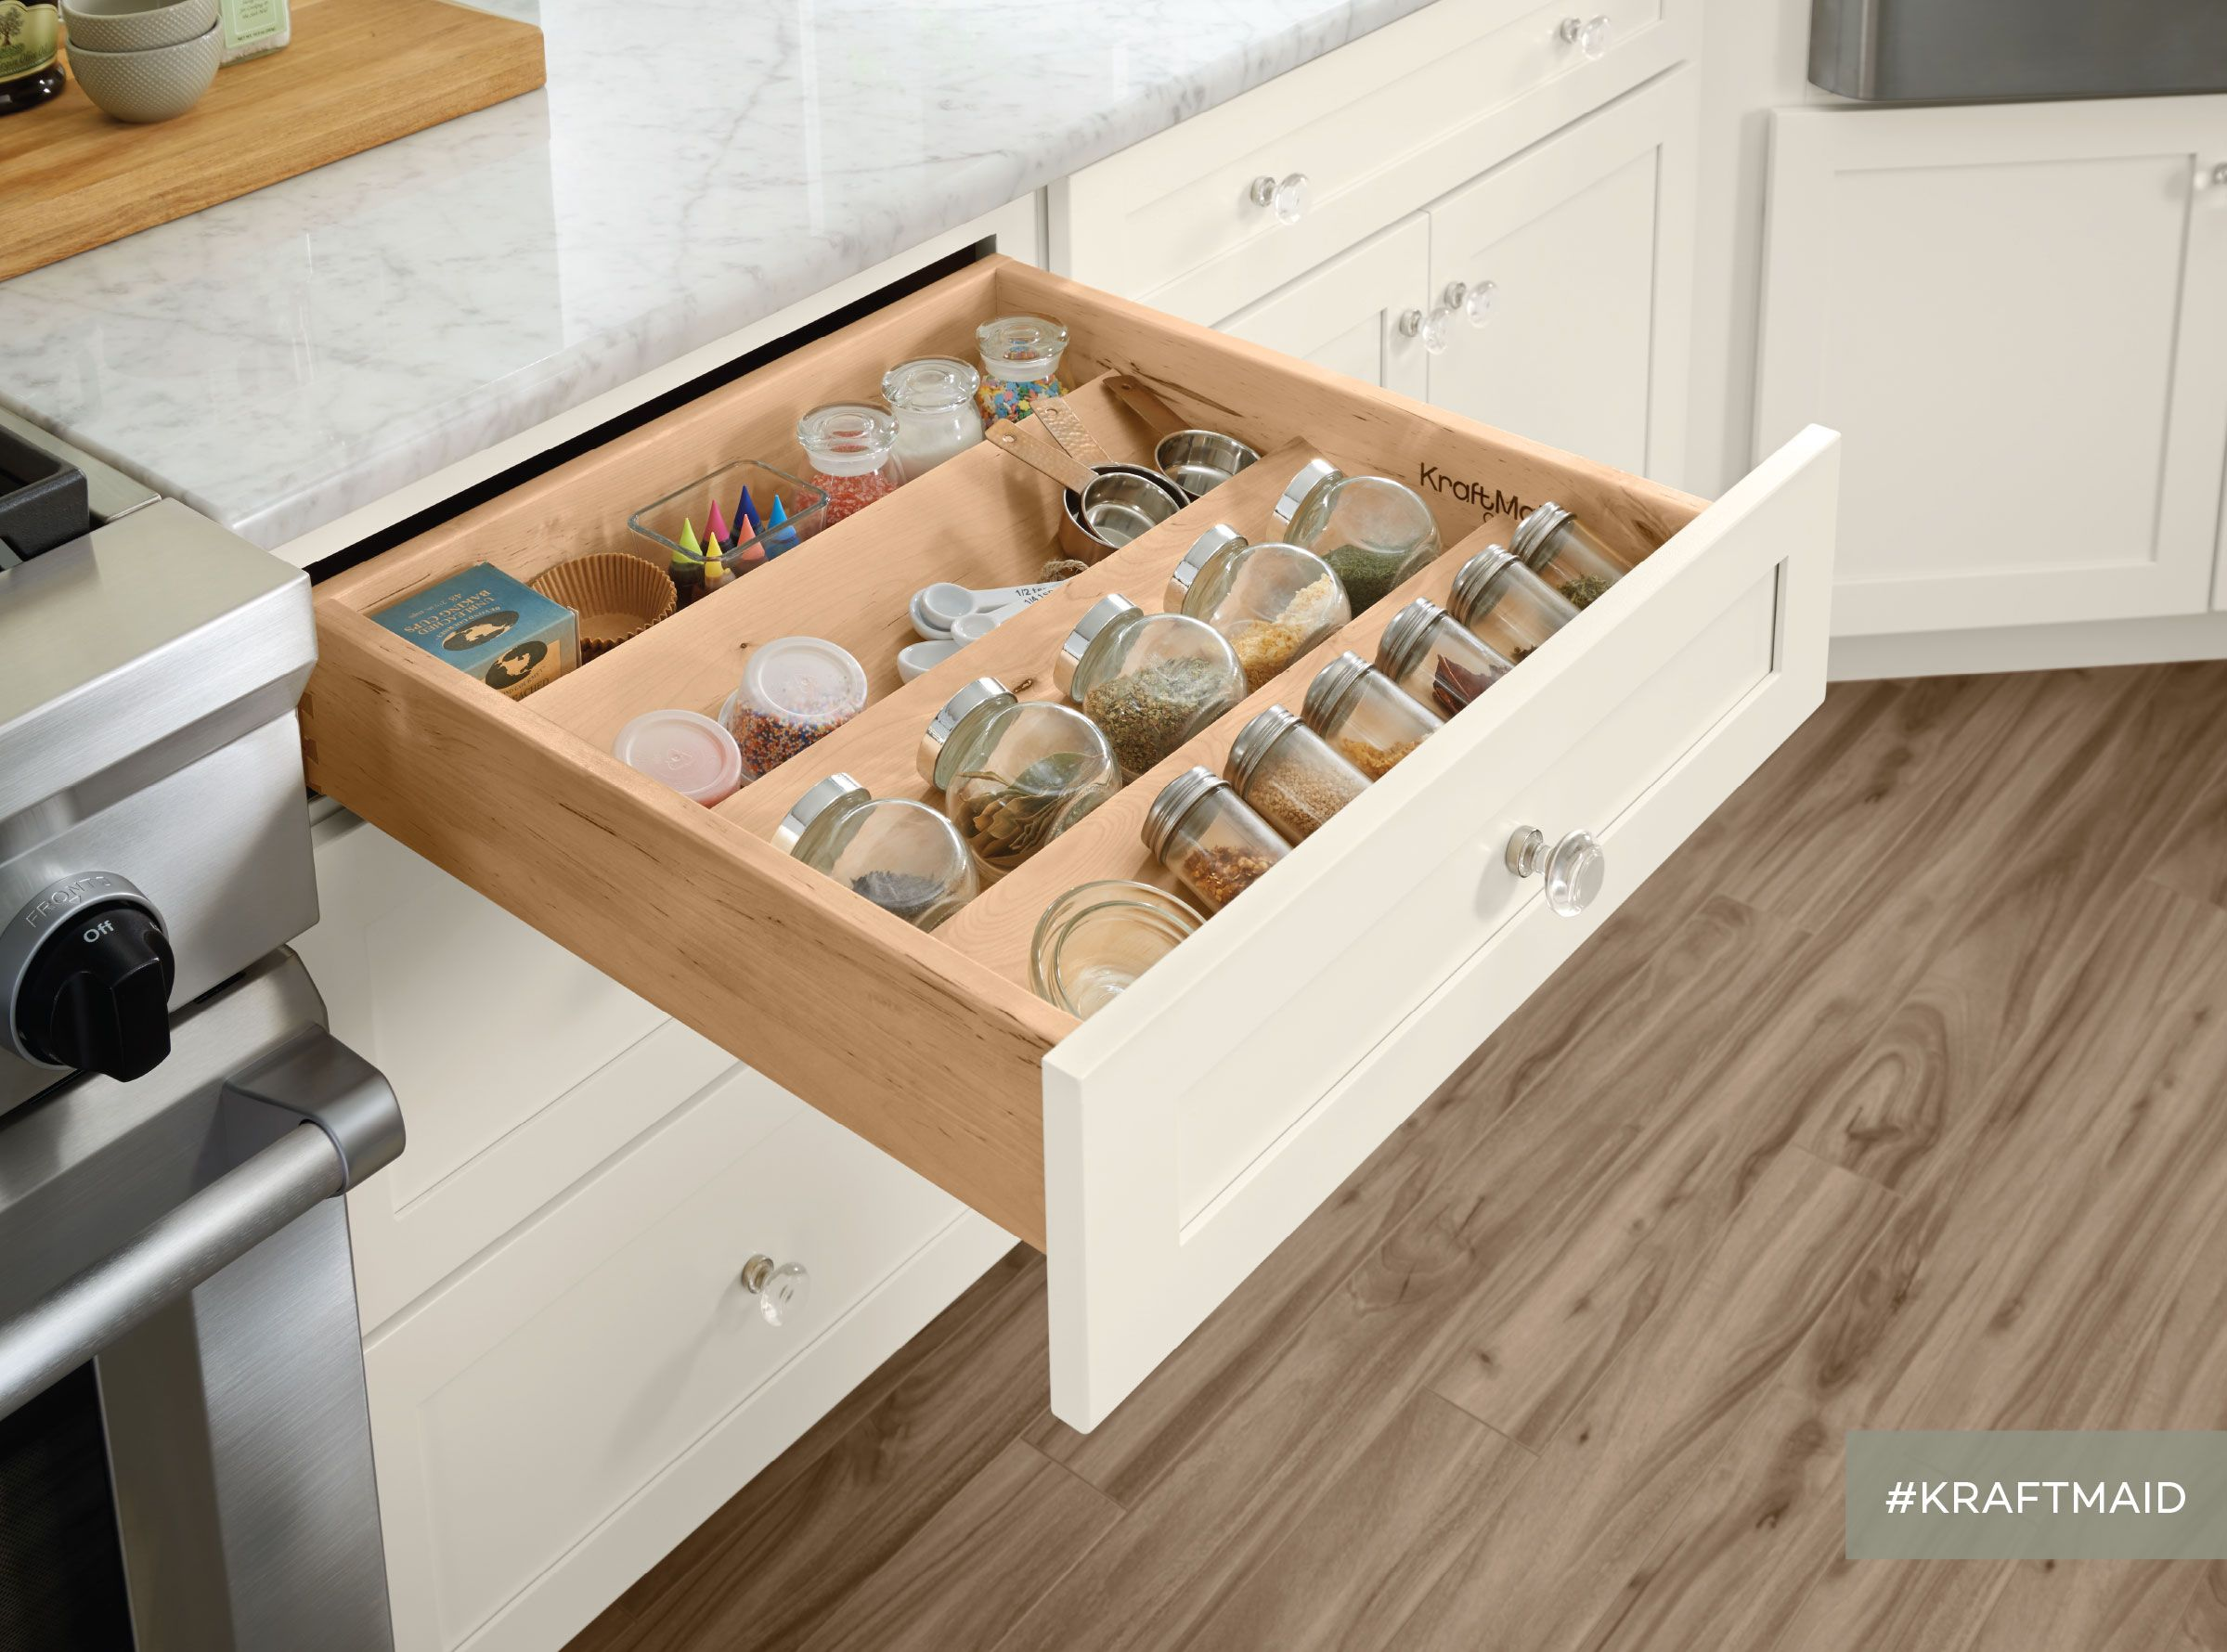 Kitchen drawer inserts for spices - A Spice Drawer Insert In The Kitchen Encourages Cooks To Experiment With Spices A Little More